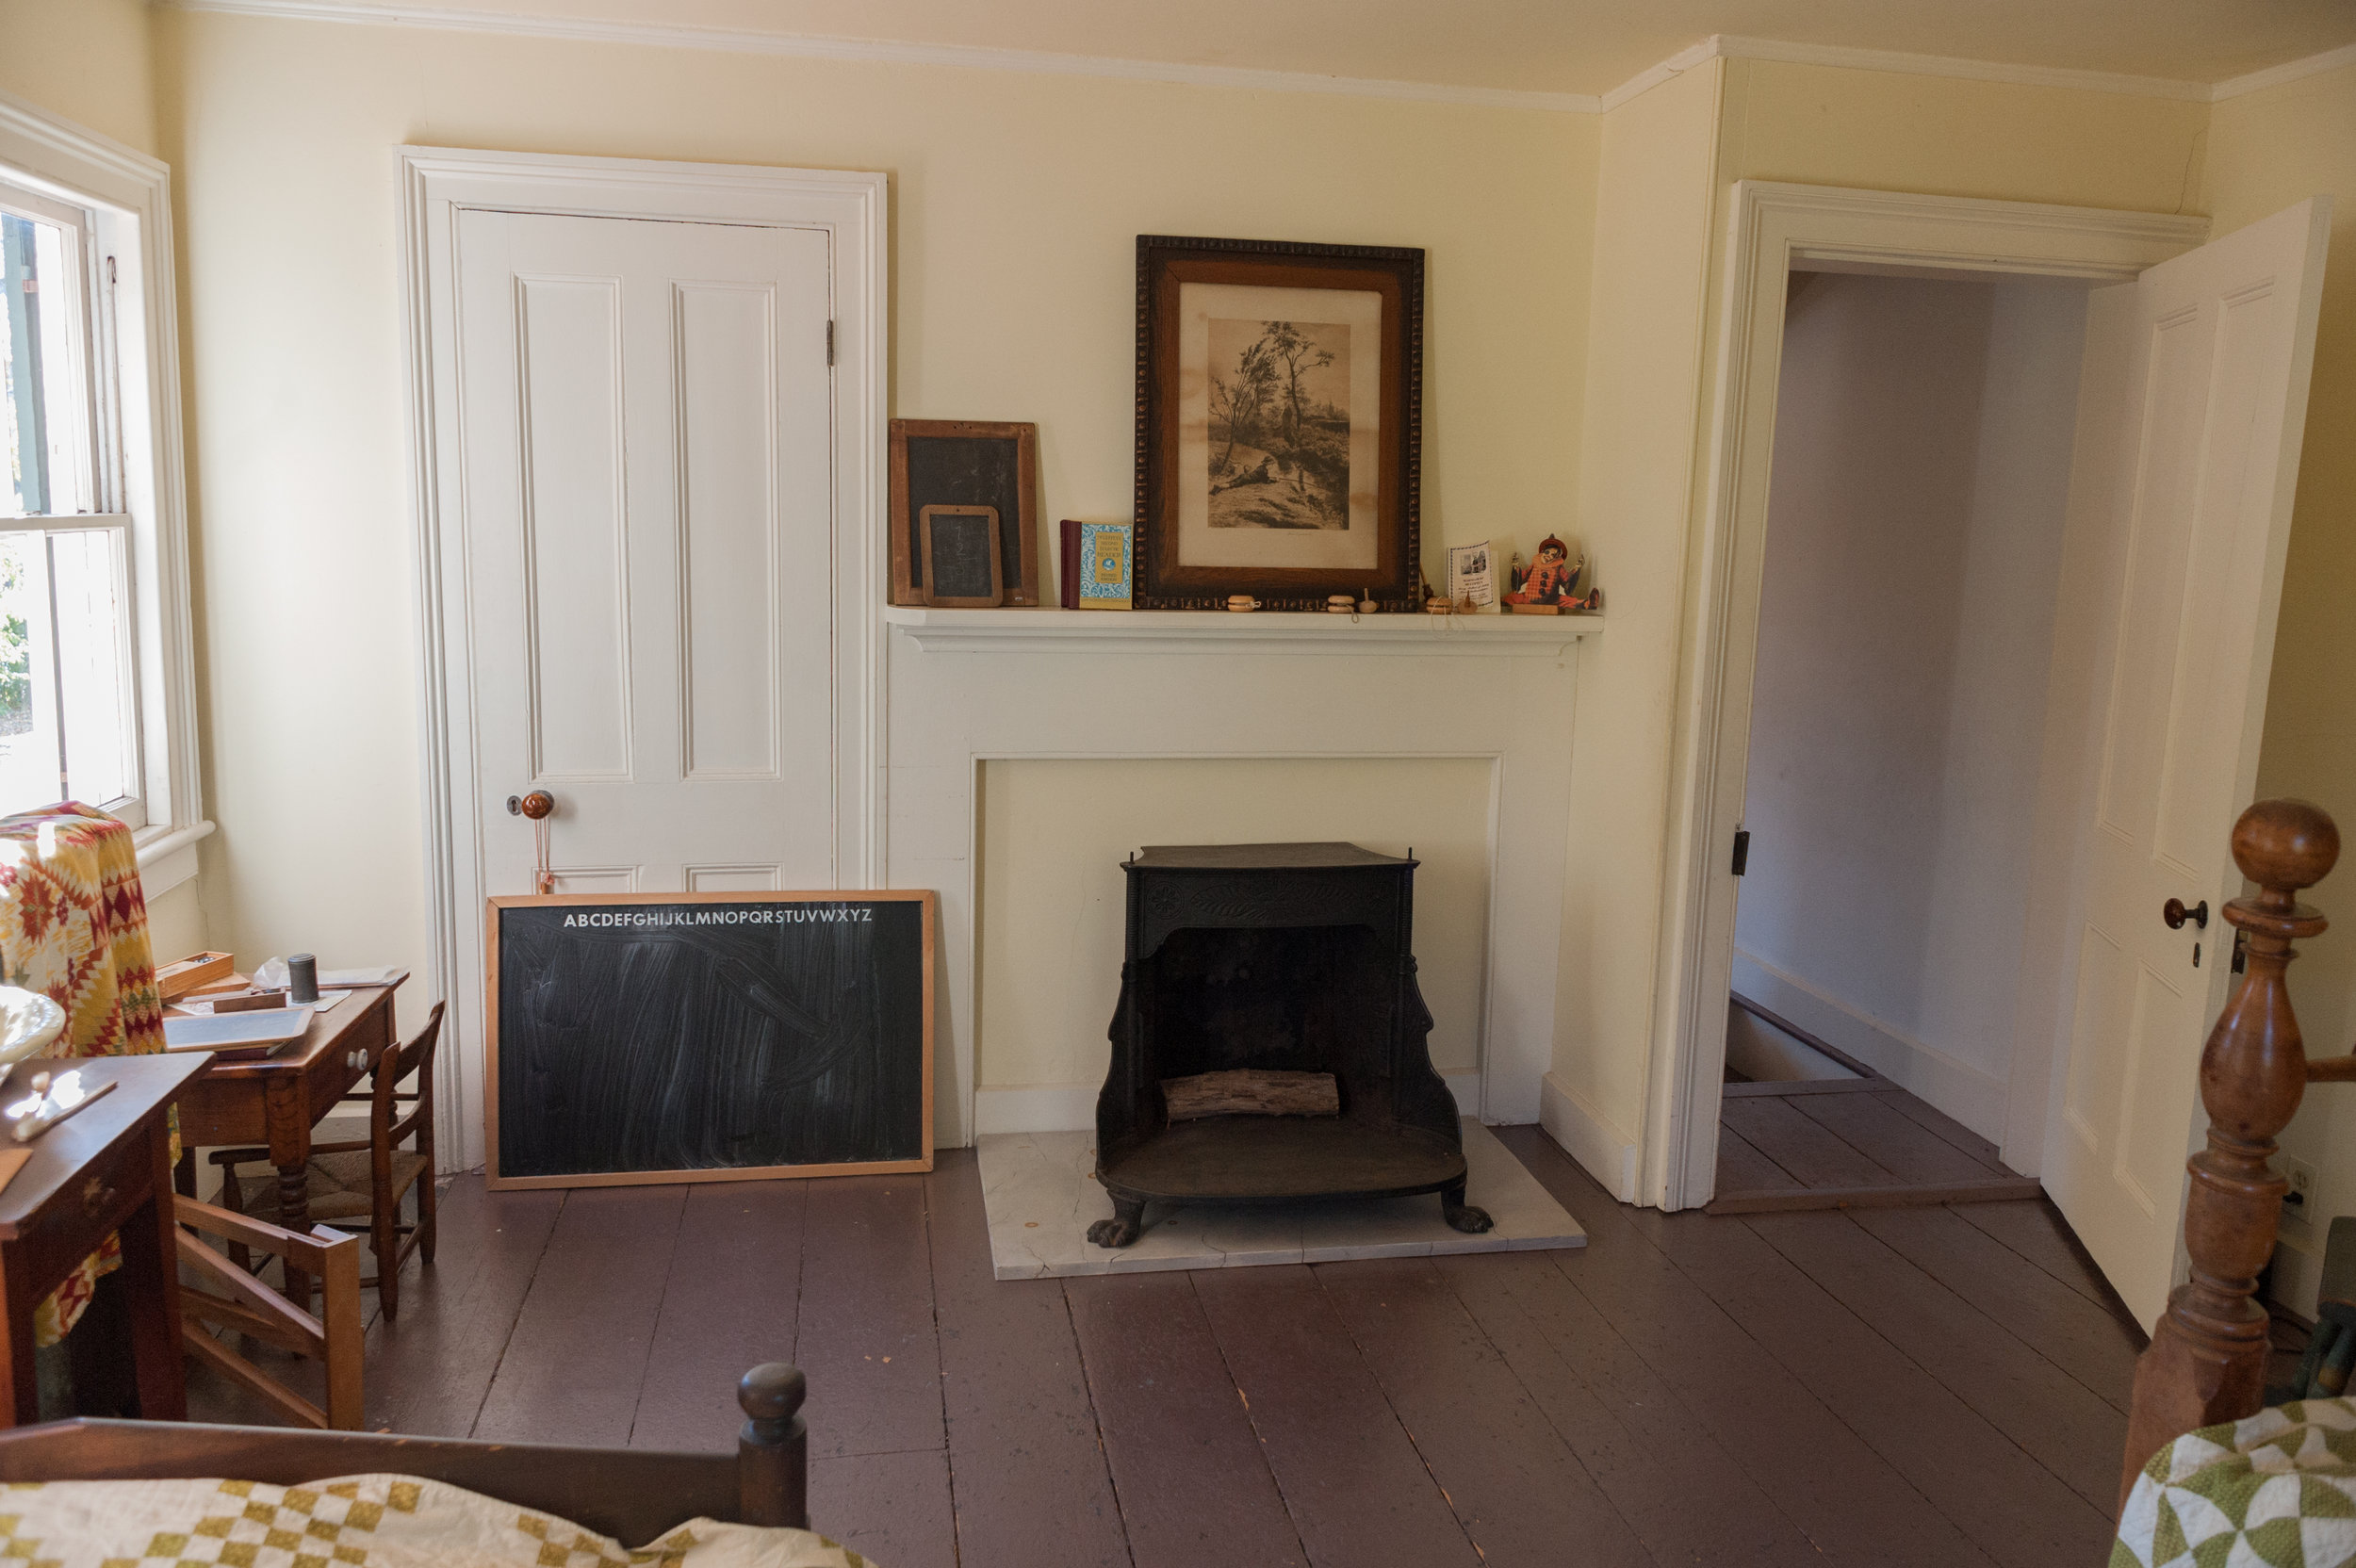 Another Franklin Stove in the fireplace kept the children's room warm.